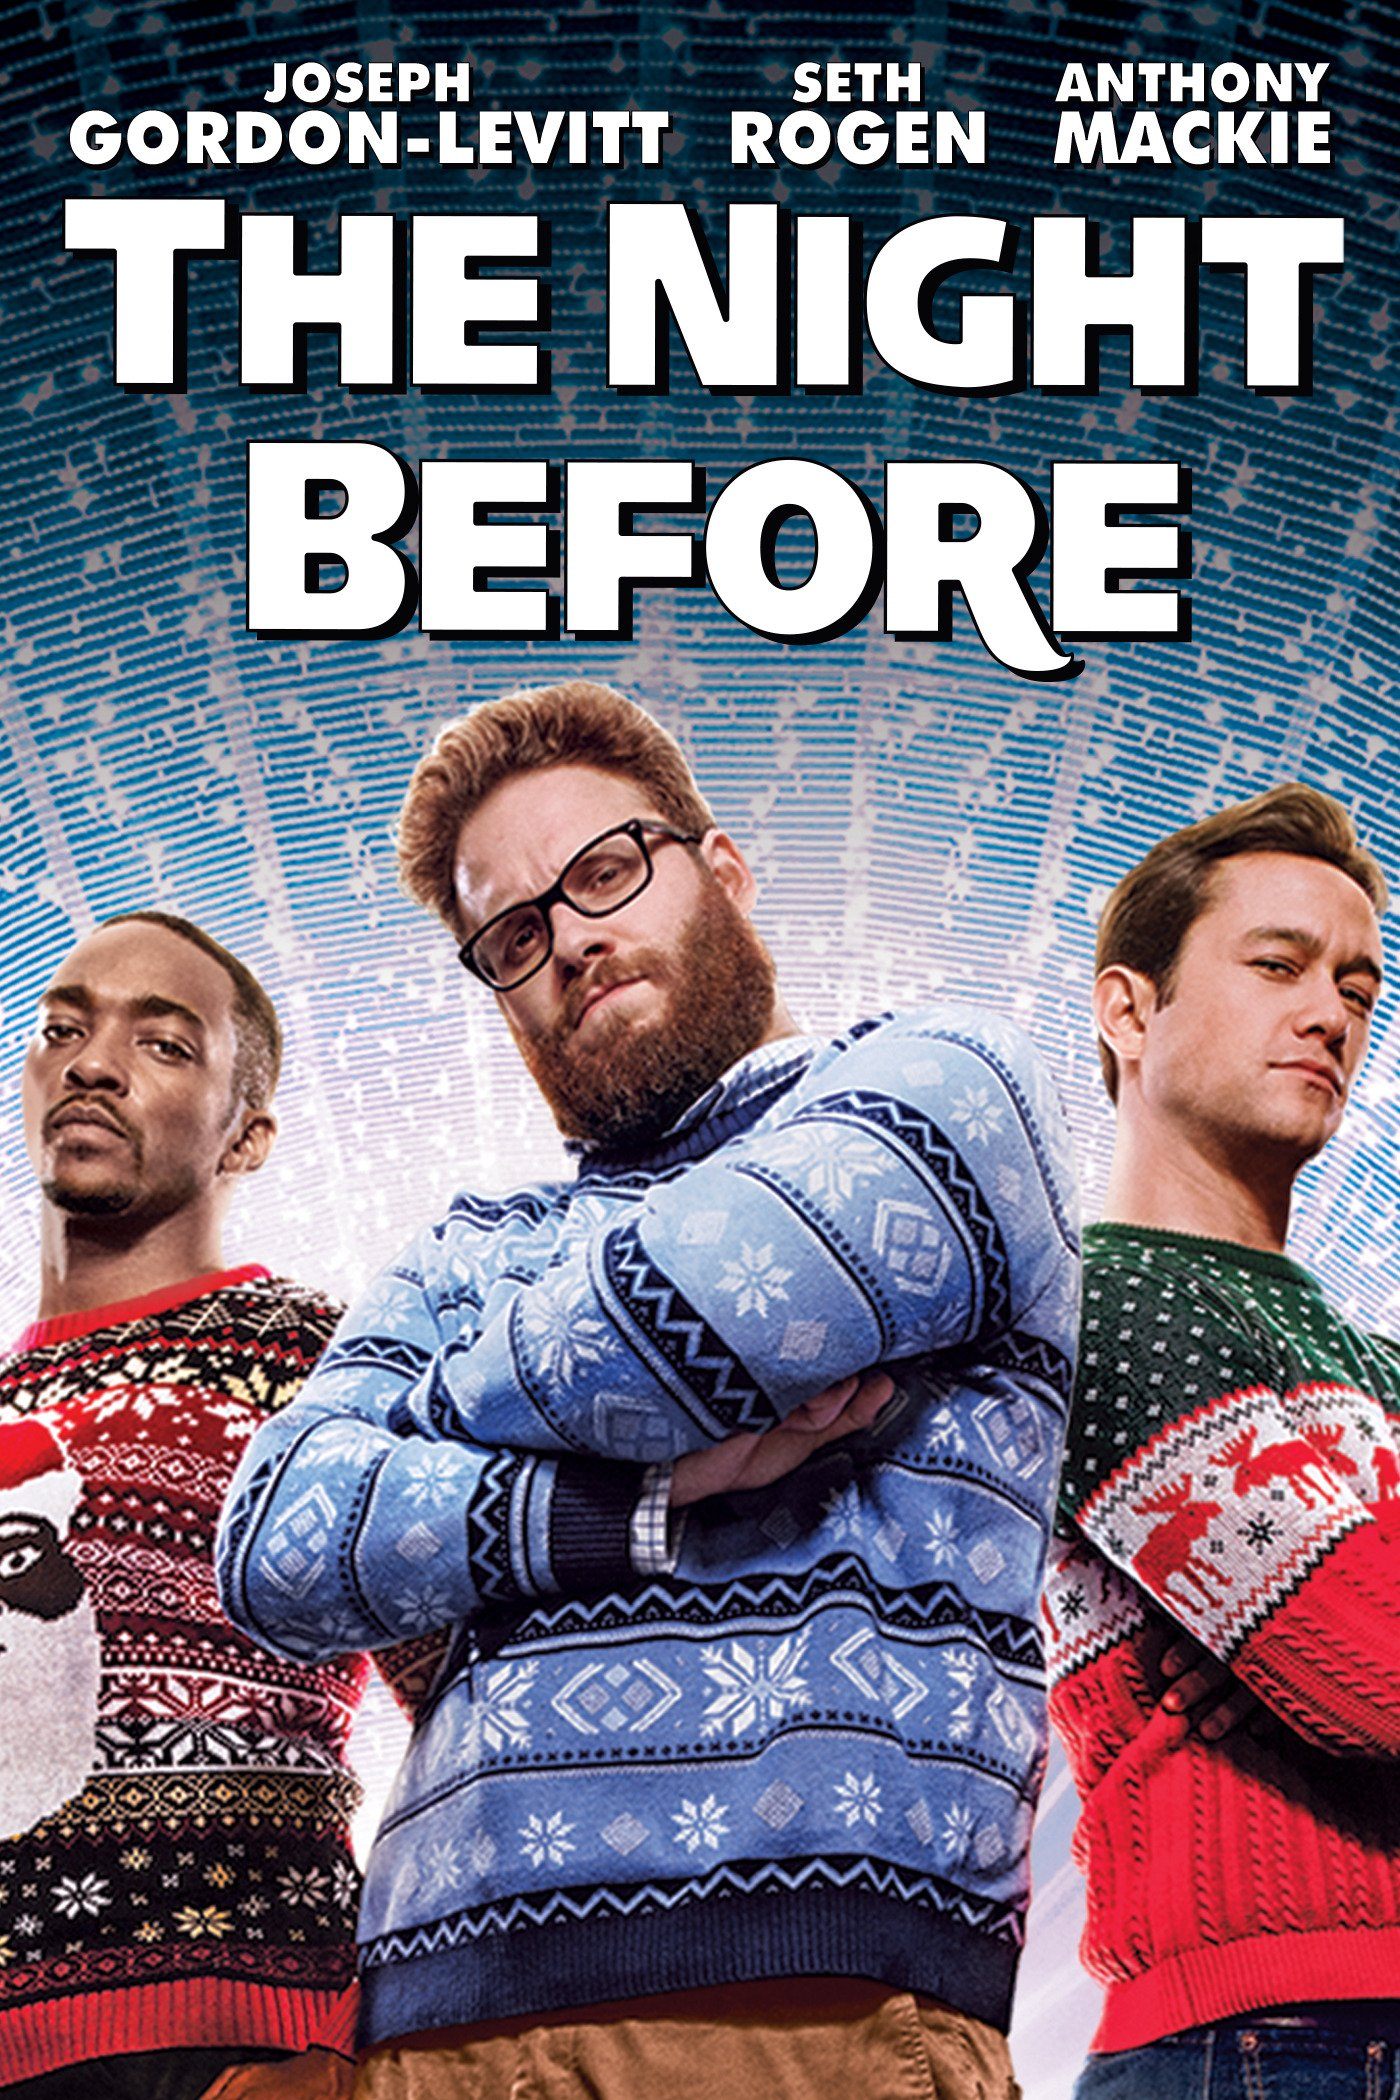 Seth Rogan Christmas.Amazon Com Watch The Night Before Prime Video